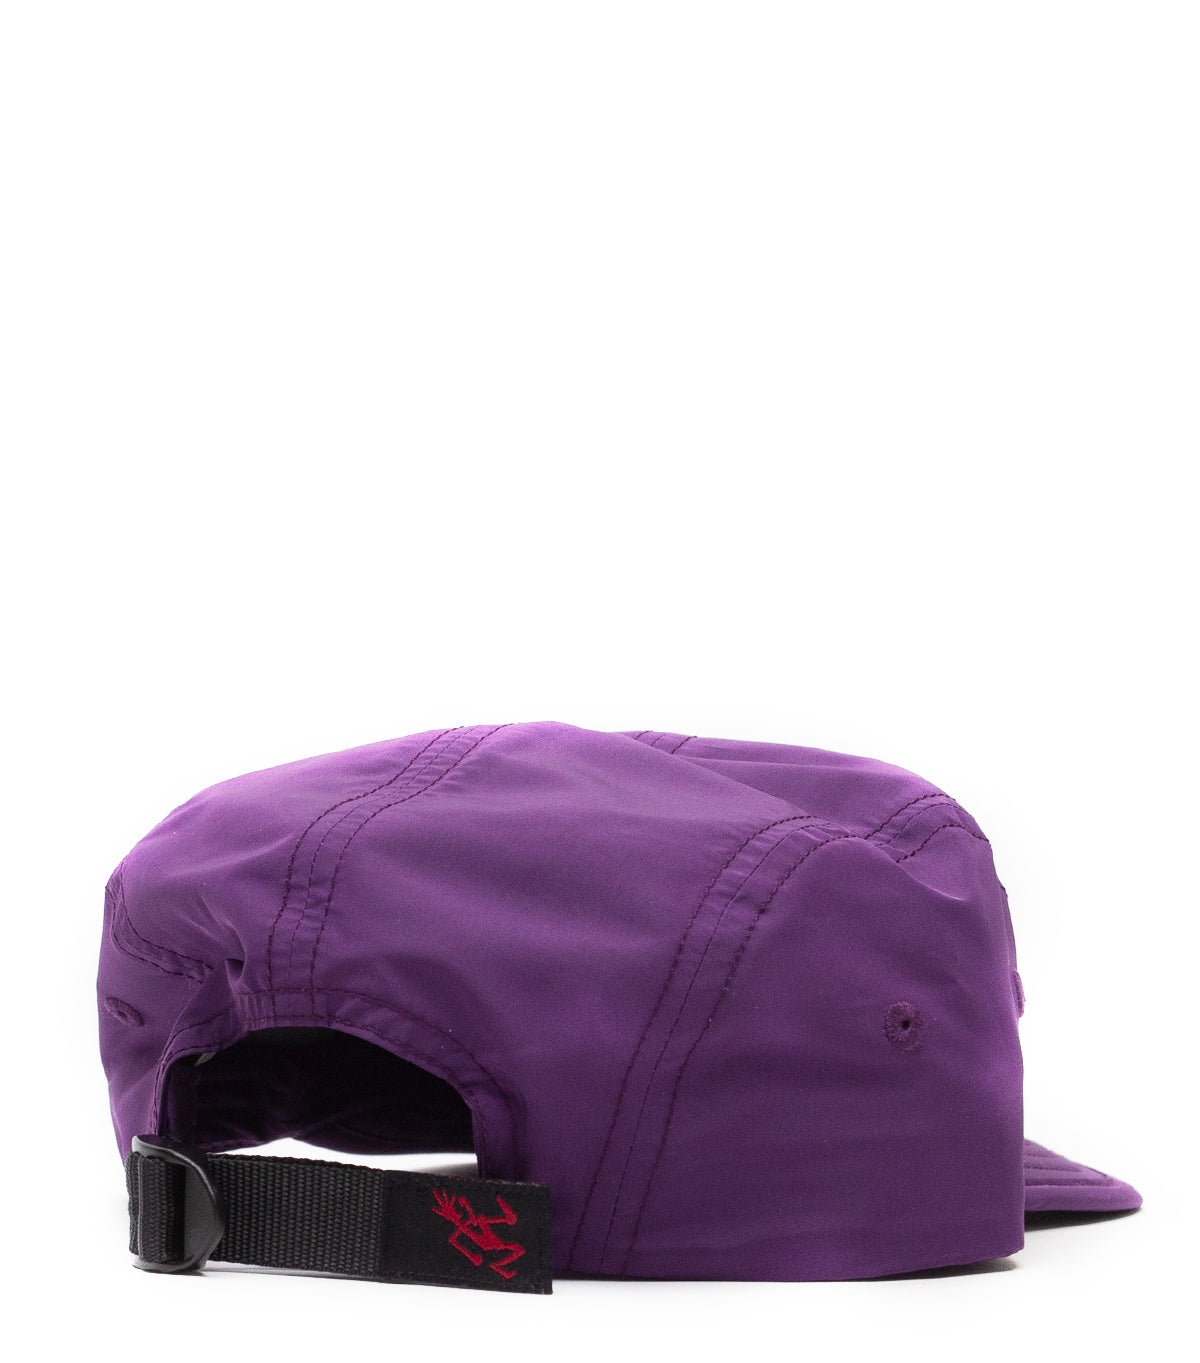 HELLY HANSEN | HELLY HANSEN MESH 5 PANEL HAT PURPLE | SOMEWHERE®